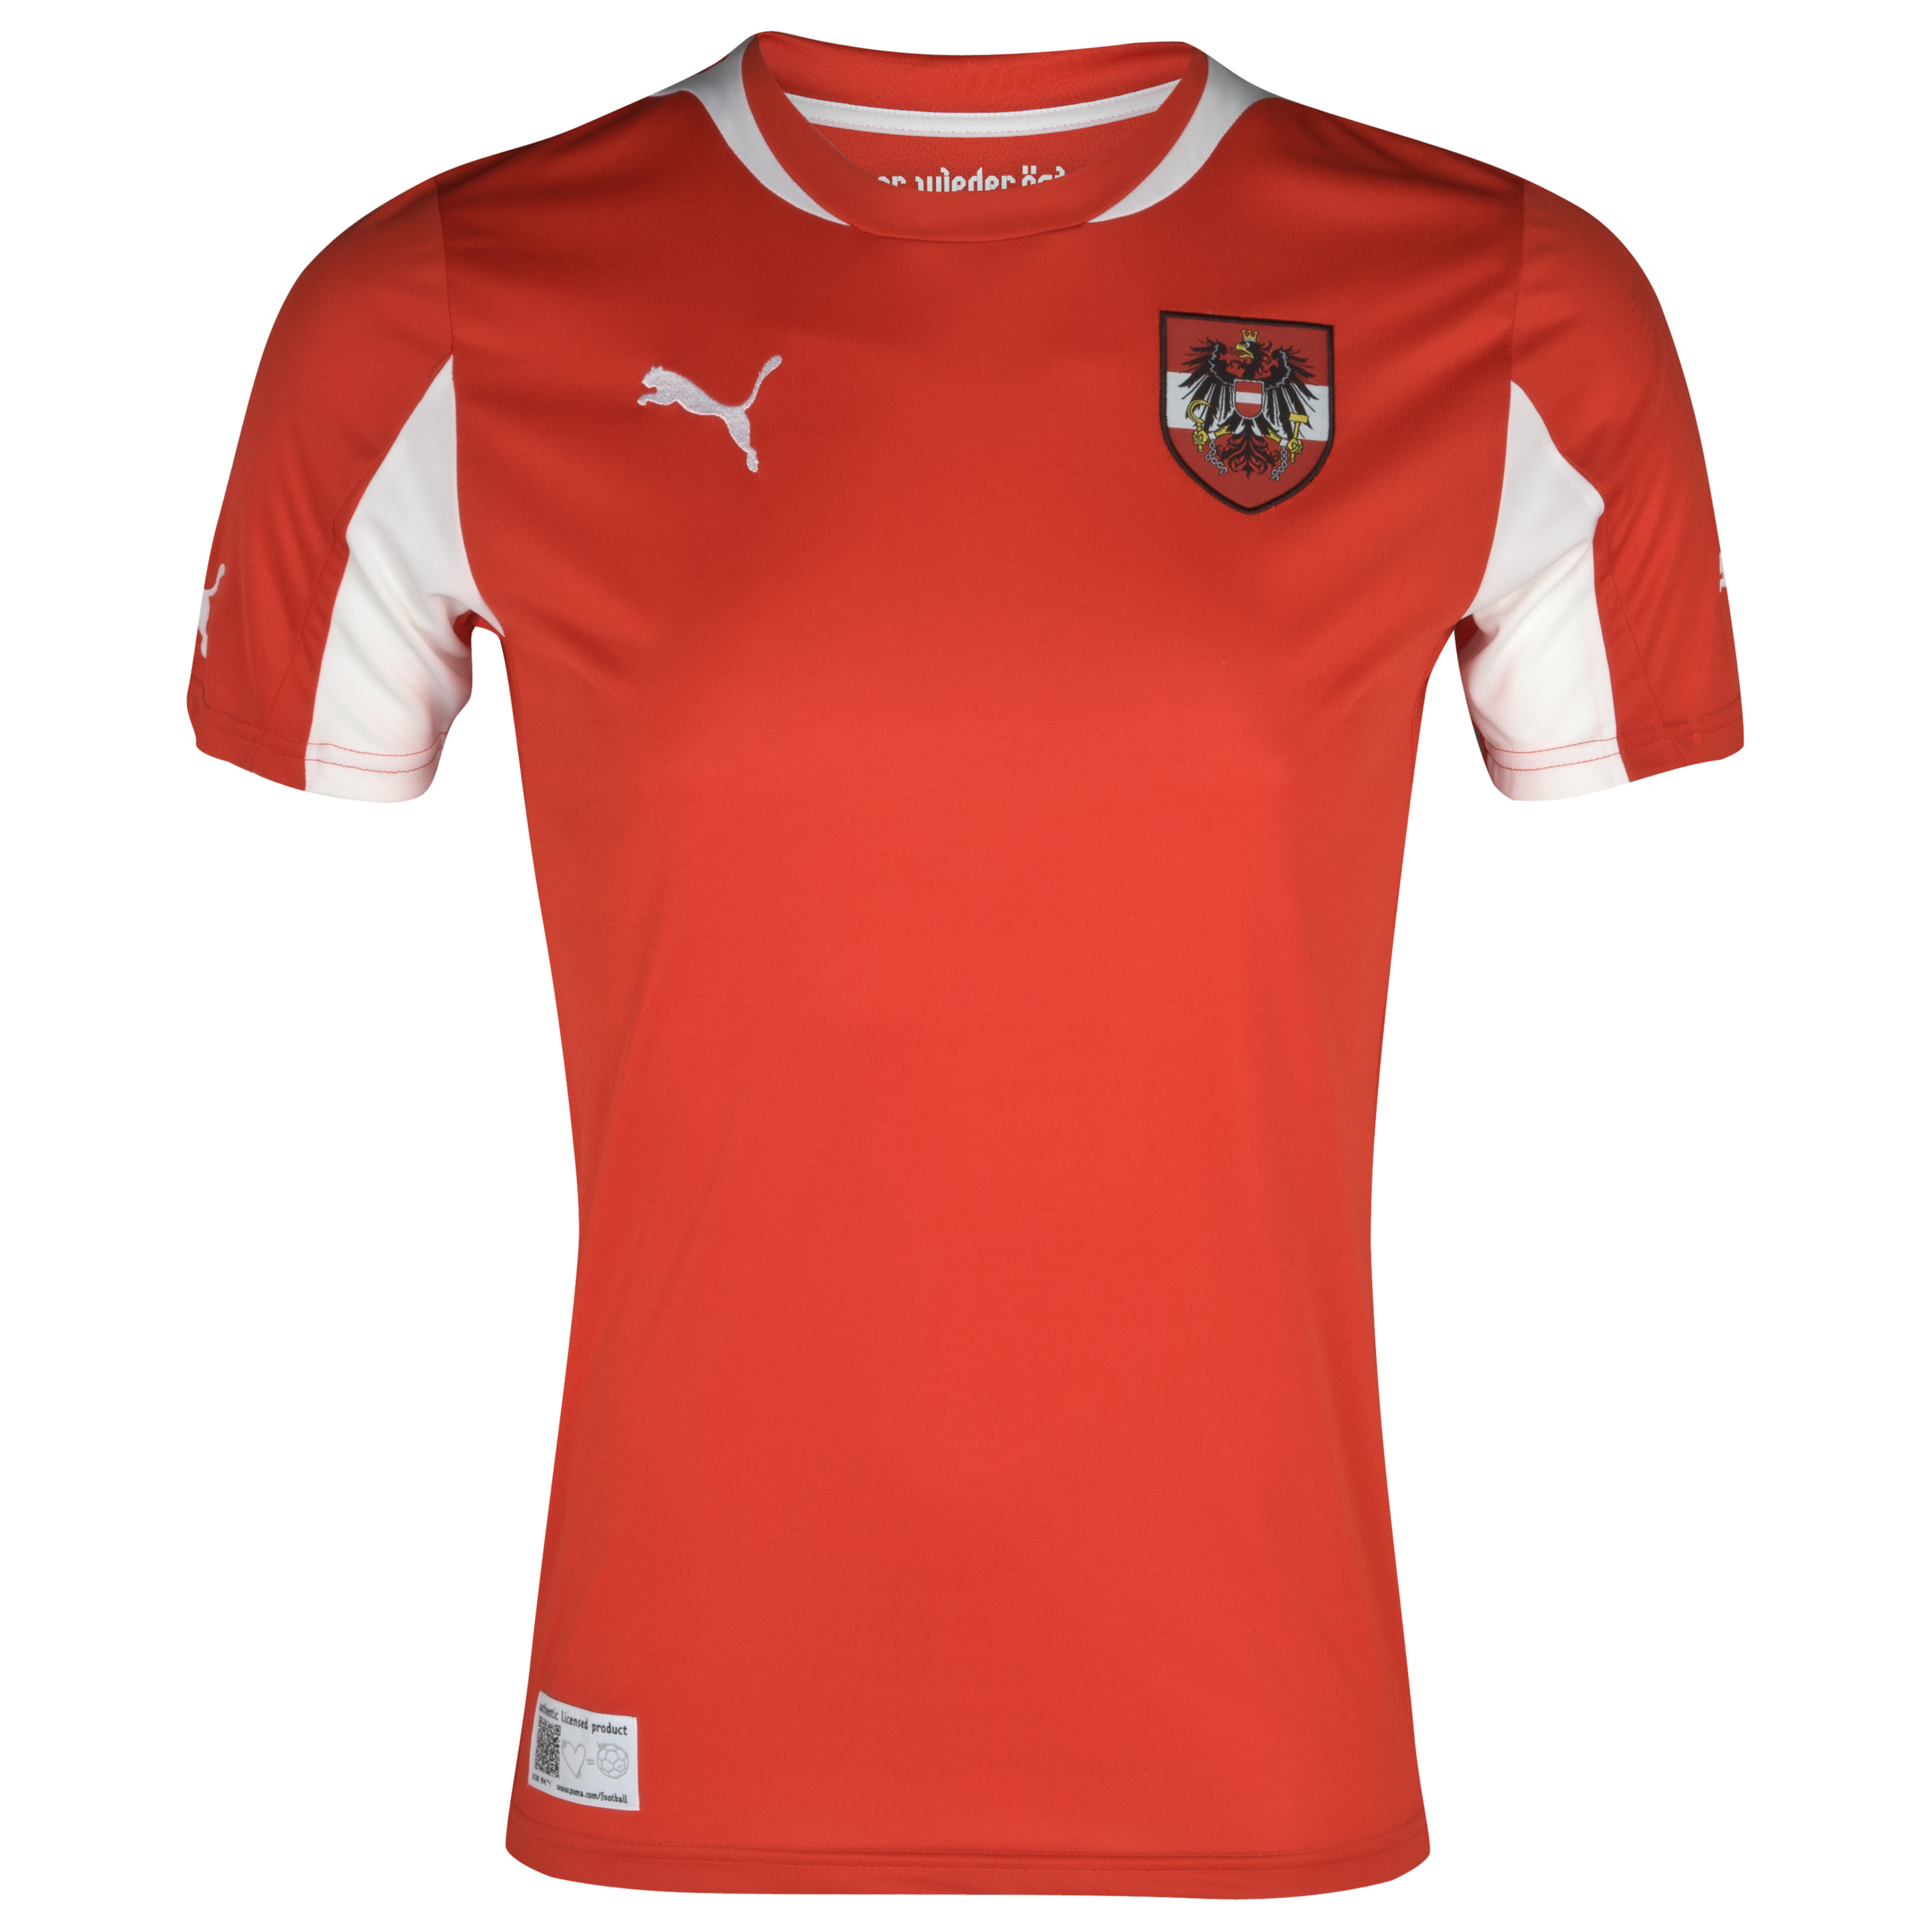 Austria Home Shirt Replica - Red/White